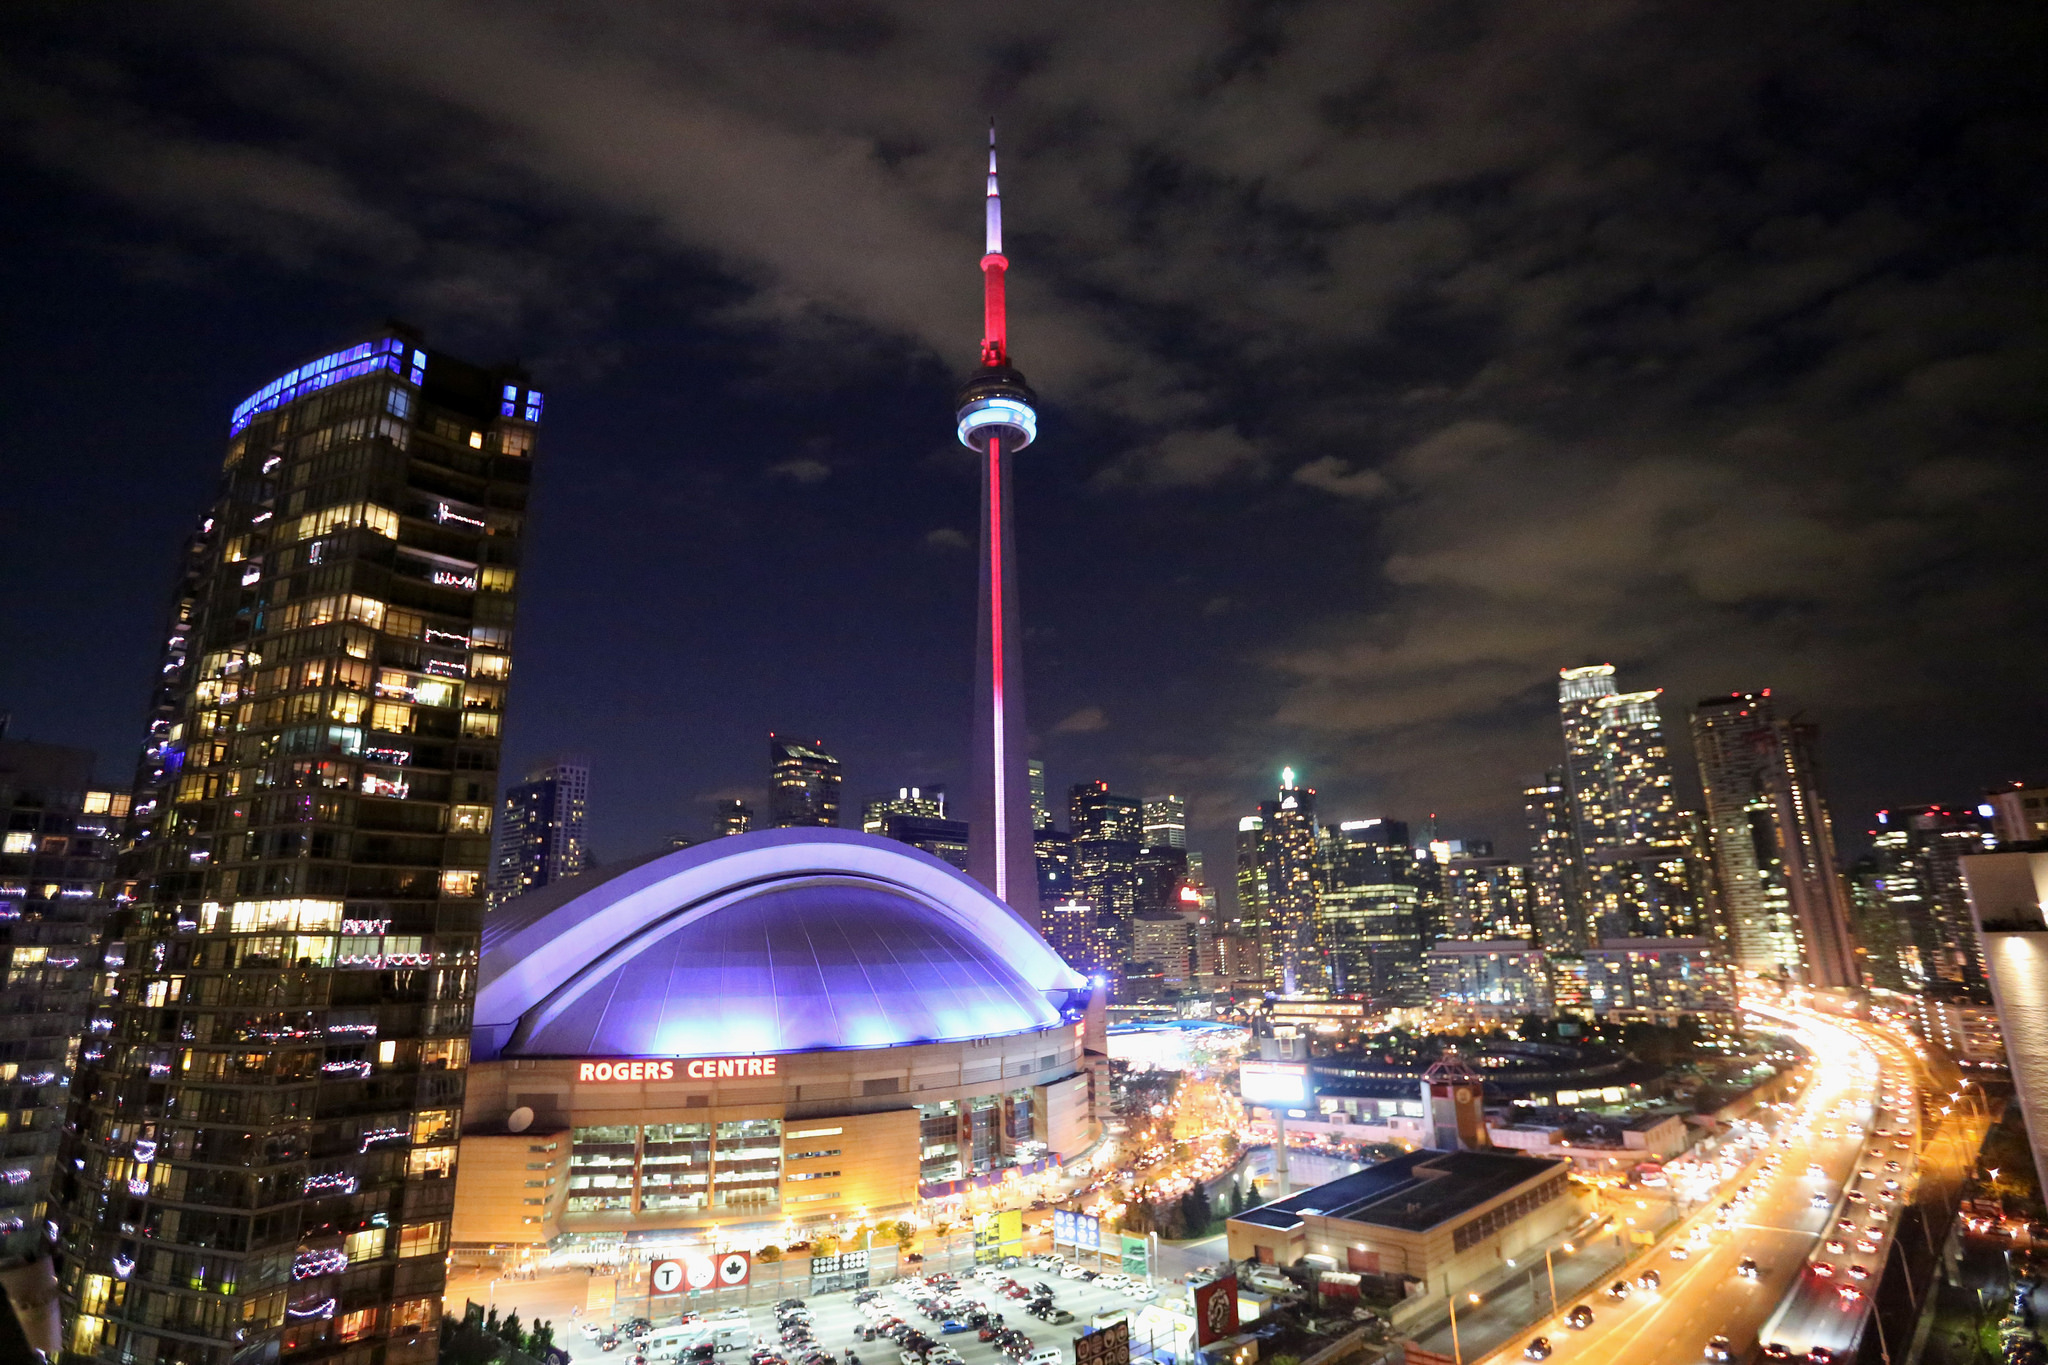 Gorgeous shot of CN Tower and Toronto at night, with so many twinkling lights.